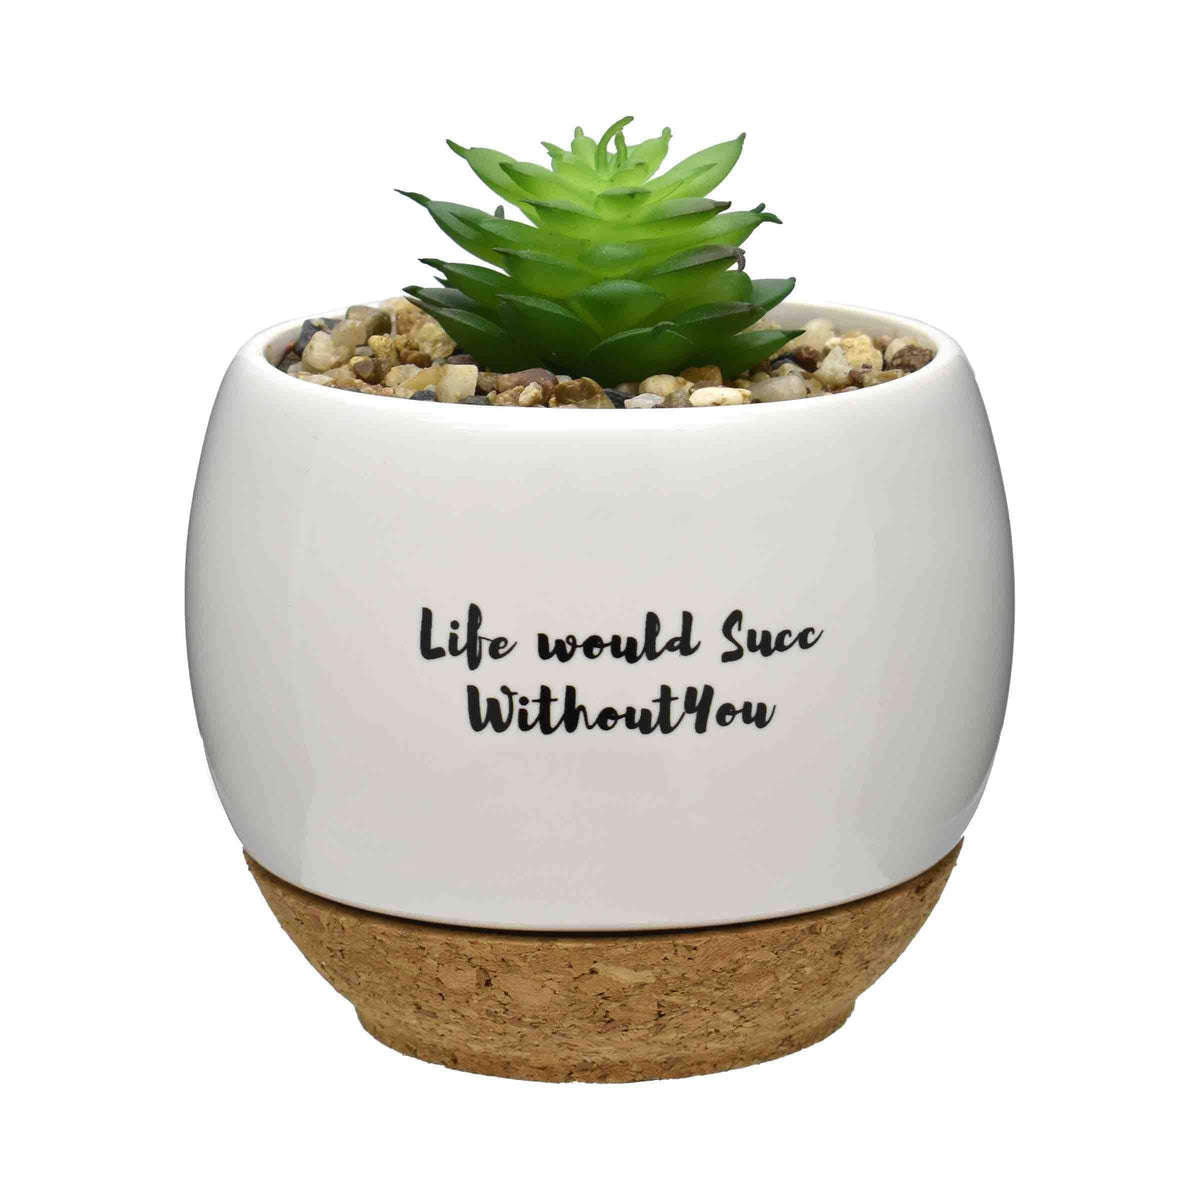 Pun Intended Mini Succulent Pot - Life Would Succ Without You